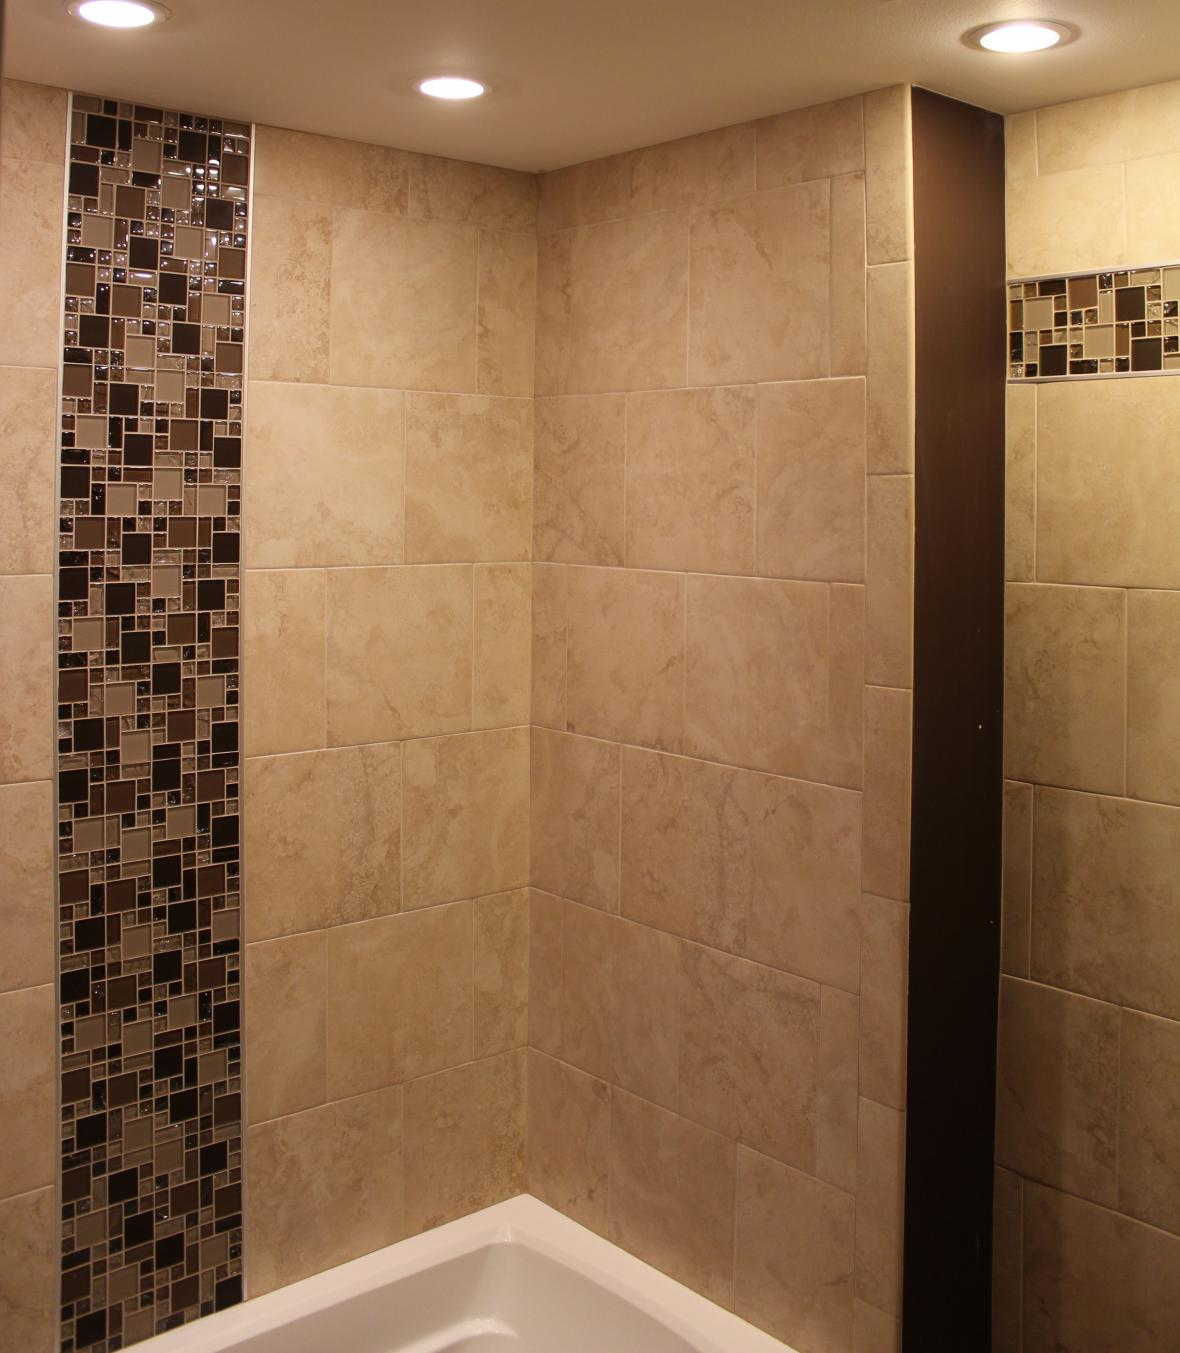 Porcelain Or Ceramic Tile For Shower Hedges Home Improvements | General Contracting And